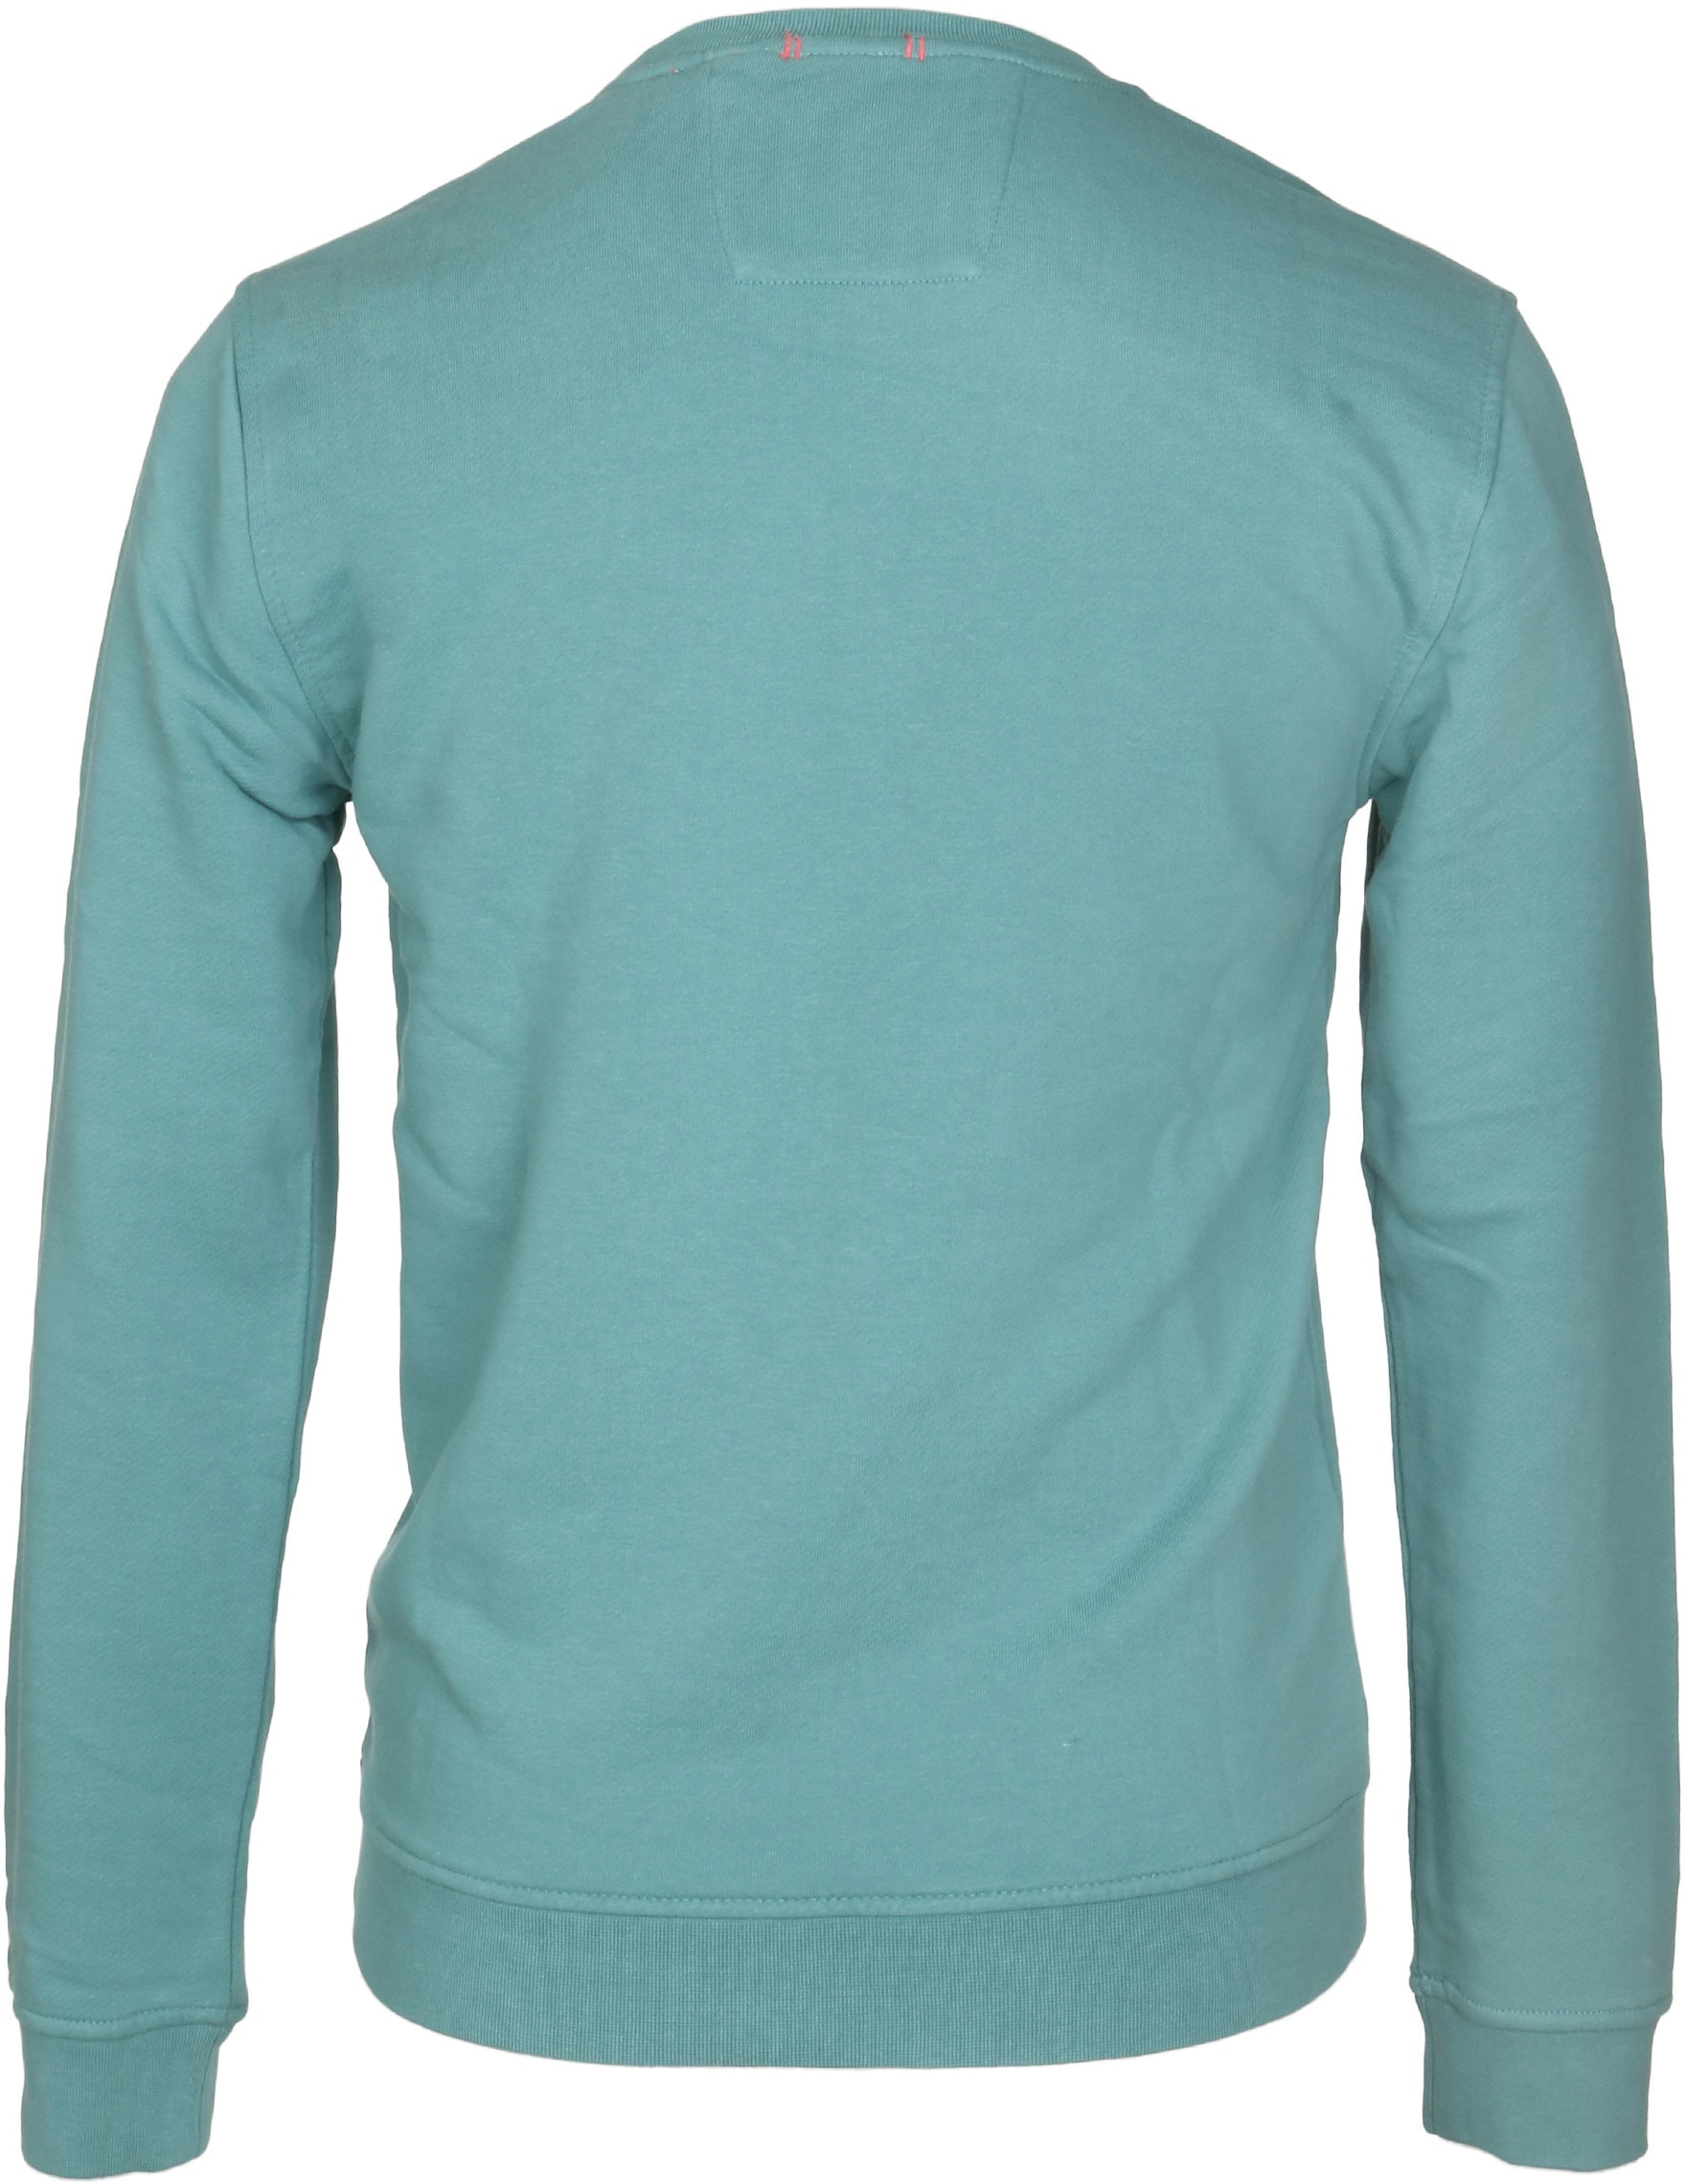 NZA Sweater Groen foto 3